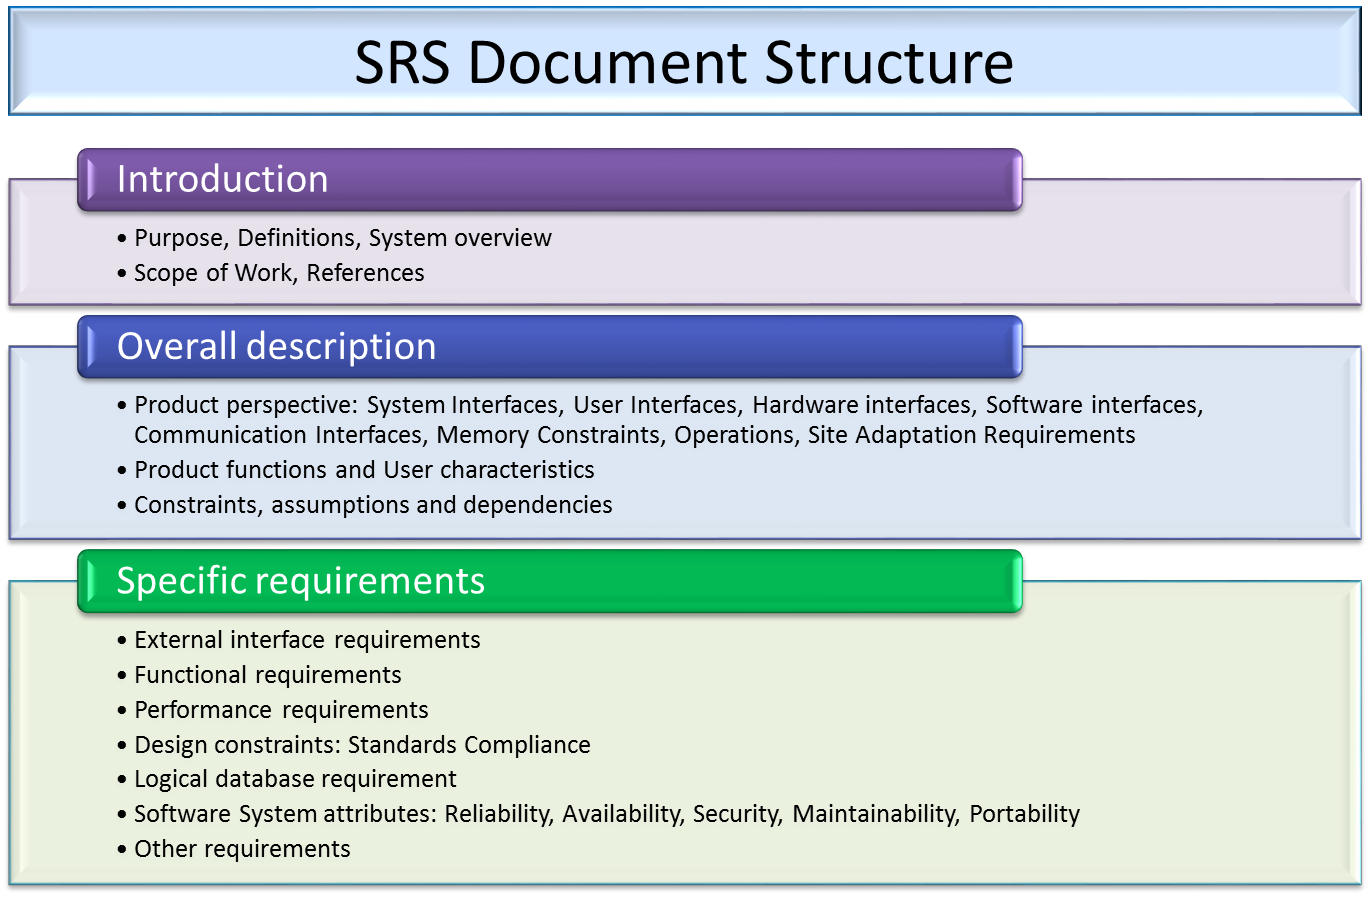 Make srs sds for your project by Arsikhan1947